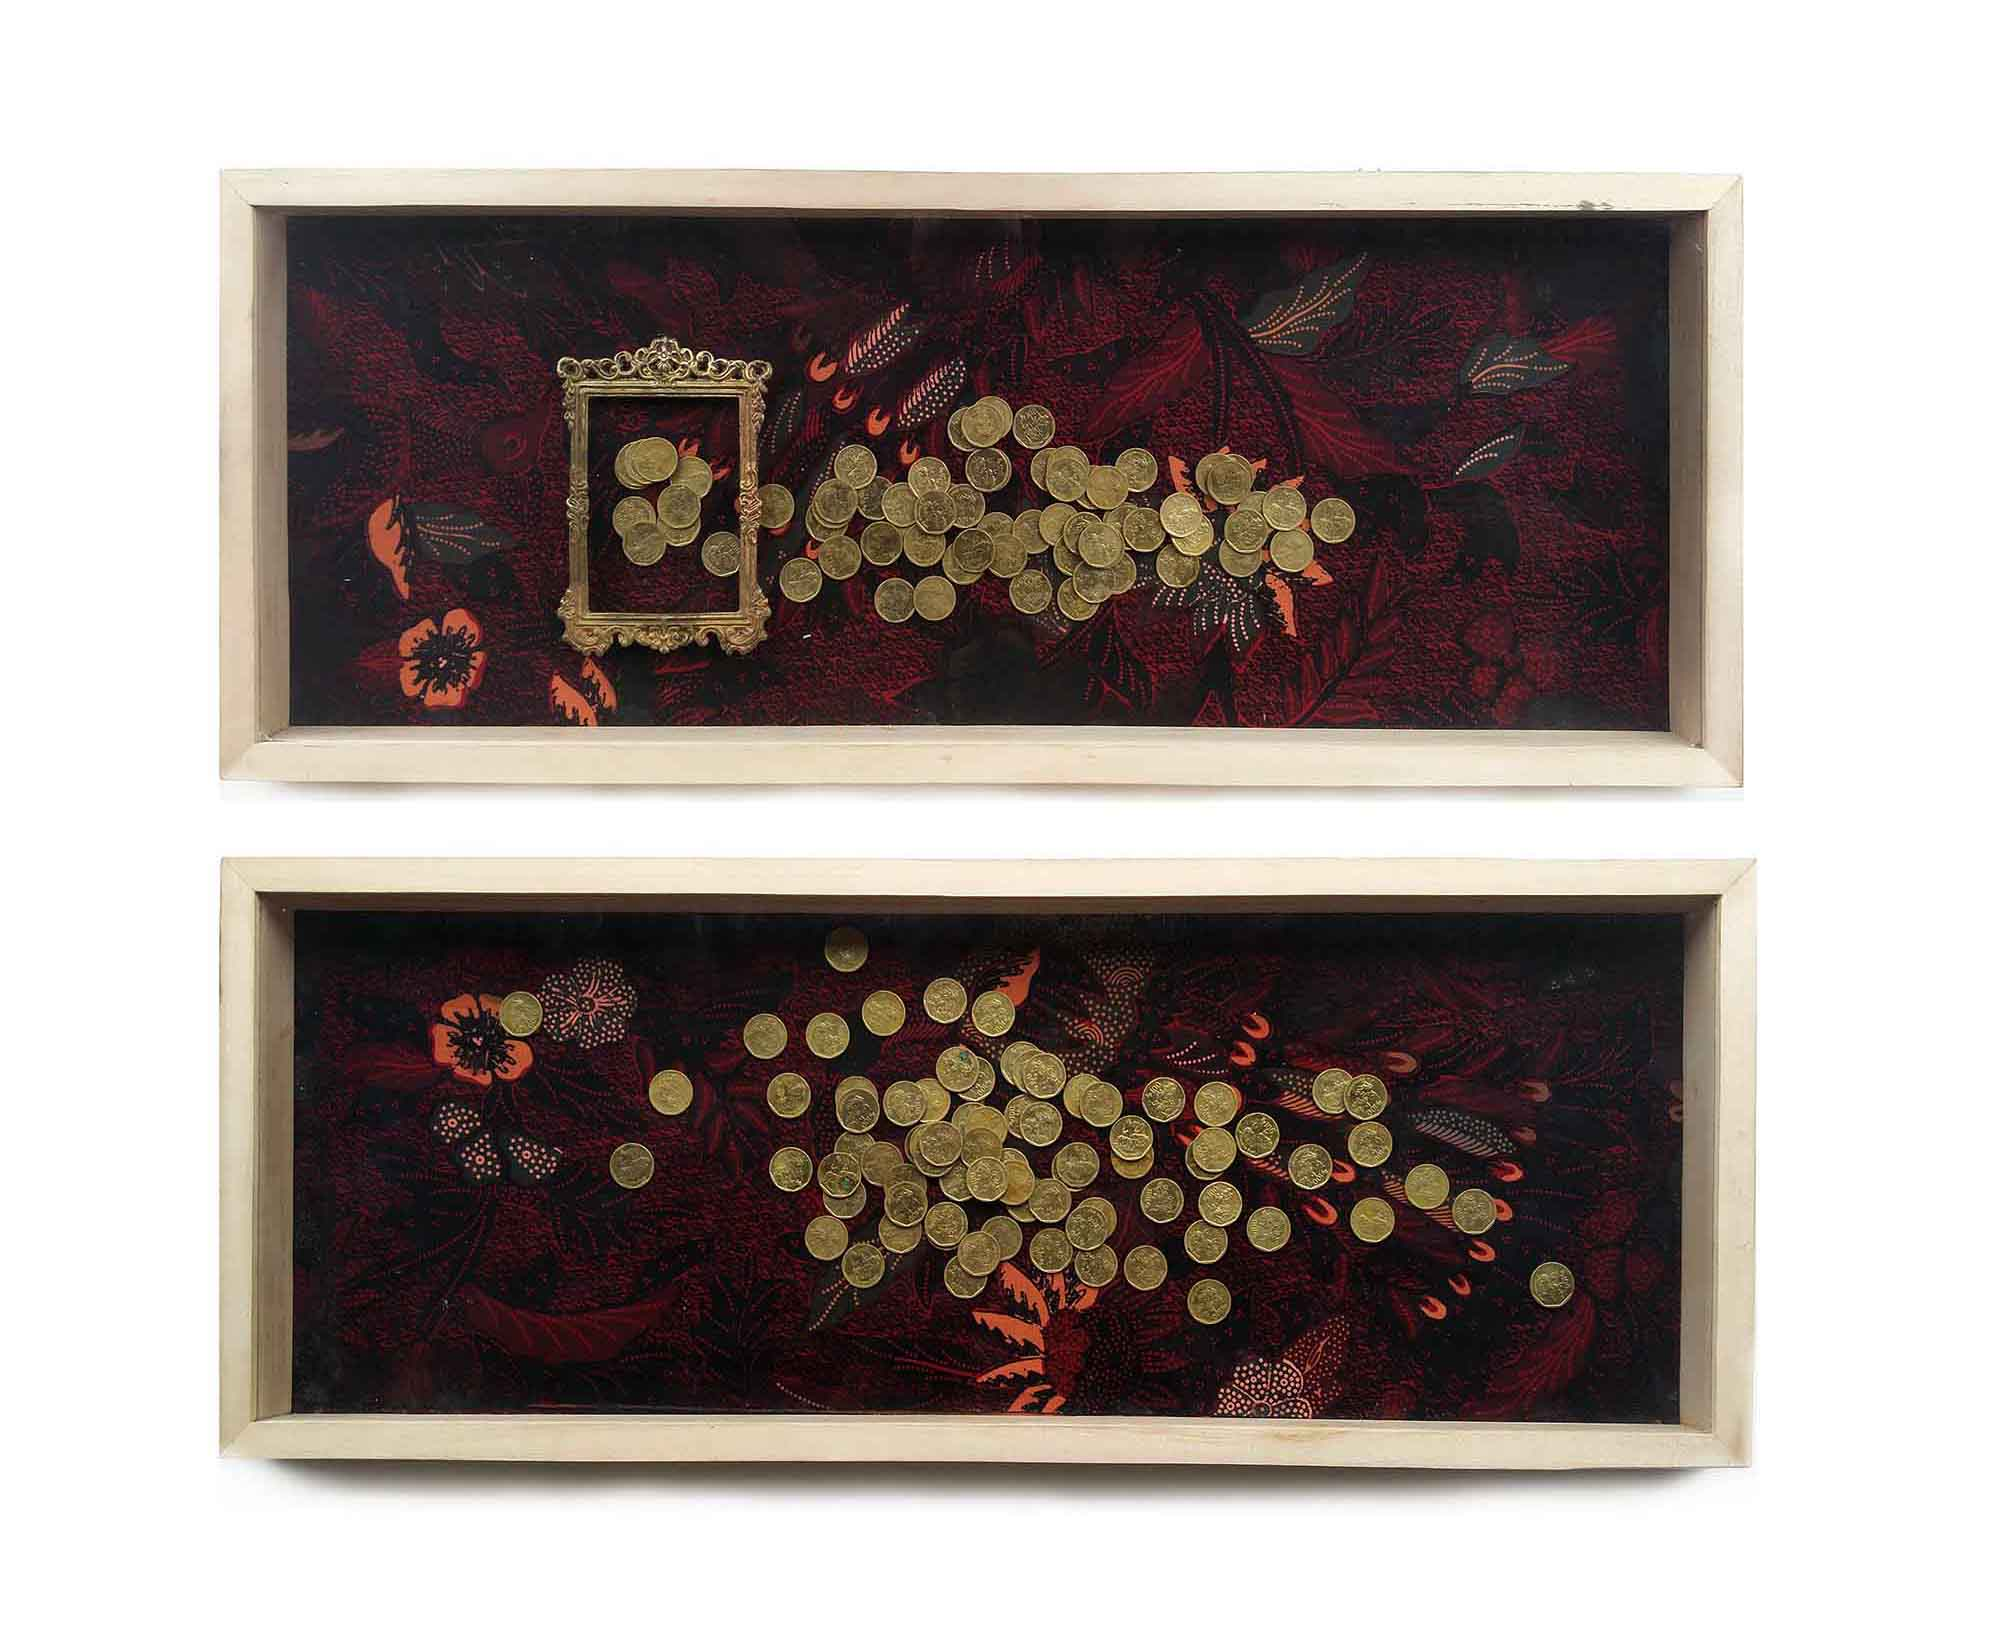 Engon, @73 x 28 cm, 2panels, 2017, Brass Coin, Batik, Brass Frame, and Wooden Frame